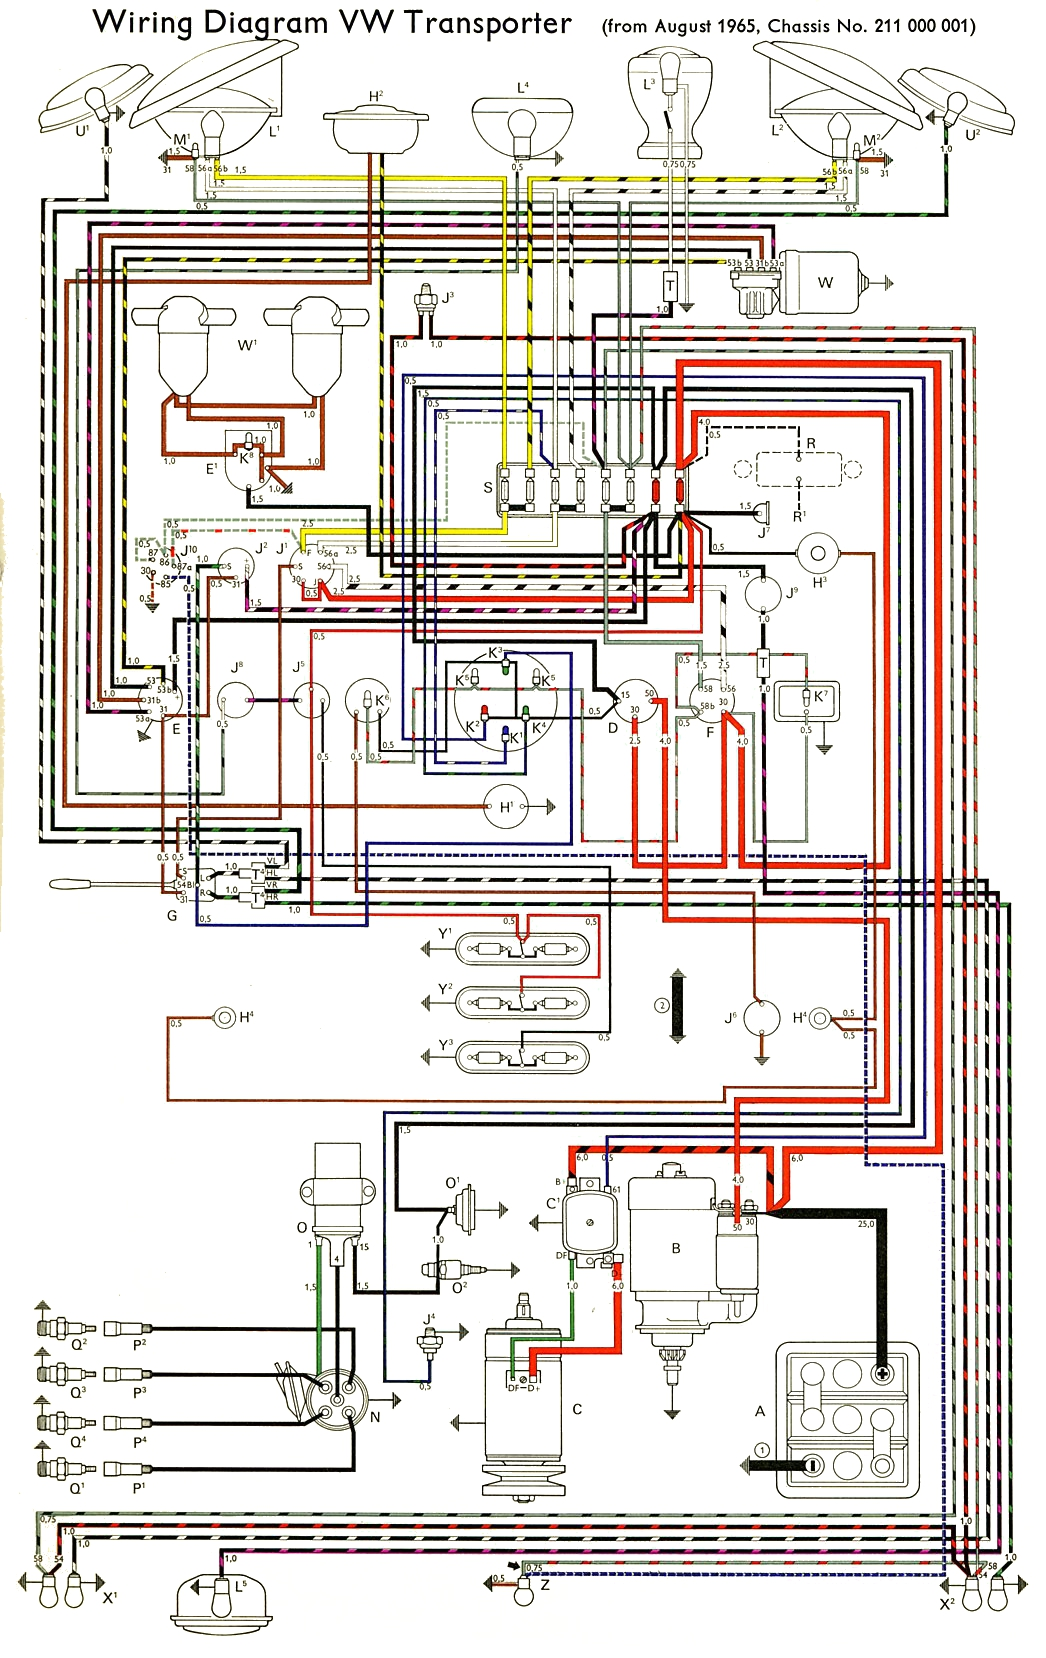 1968 mgb wiring diagram 7 spikeballclubkoeln de \u20221966 mgb wiring  diagram free download schematic schematic